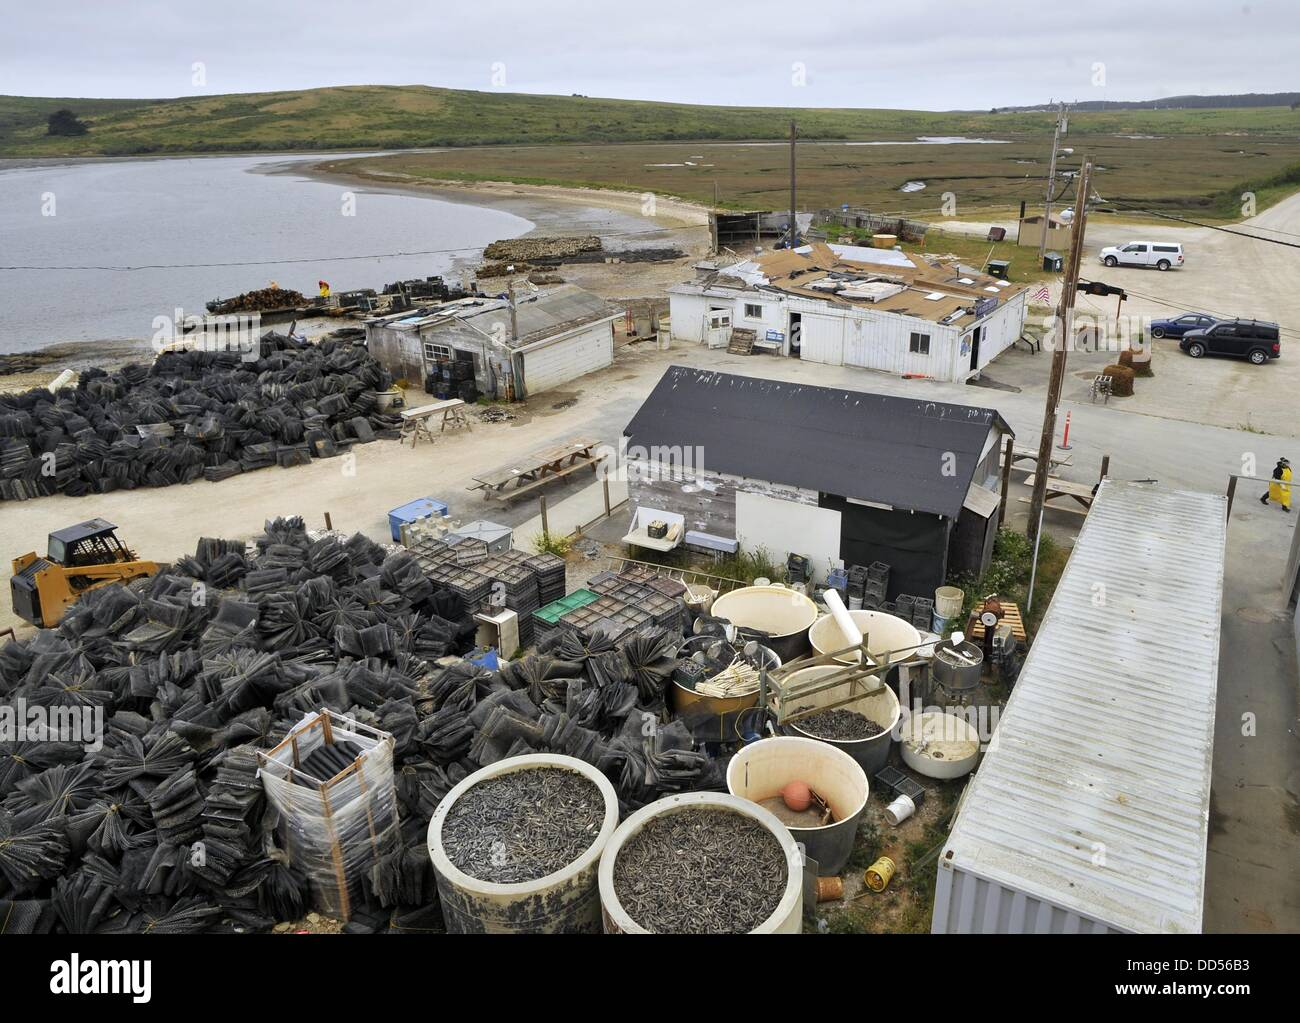 May 23, 2013 - Inverness, California, USA - A general overview of the Drakes Bay Oyster Farm on May 09, 2013 in - Stock Image